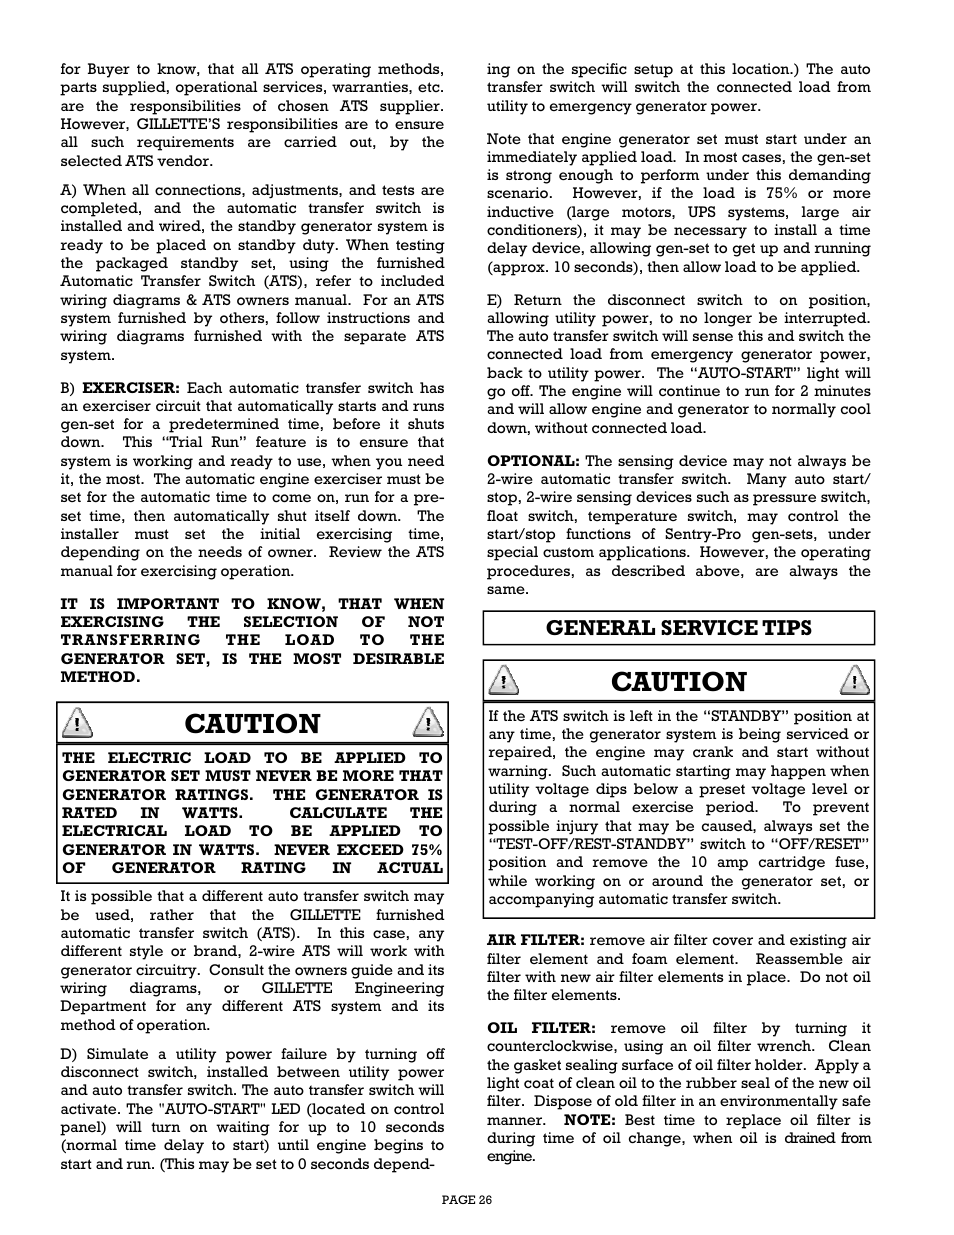 Caution General Service Tips Gillette Generators Sp 1500 User Generator Transfer Switch Wiring Off Position Manual Page 26 30